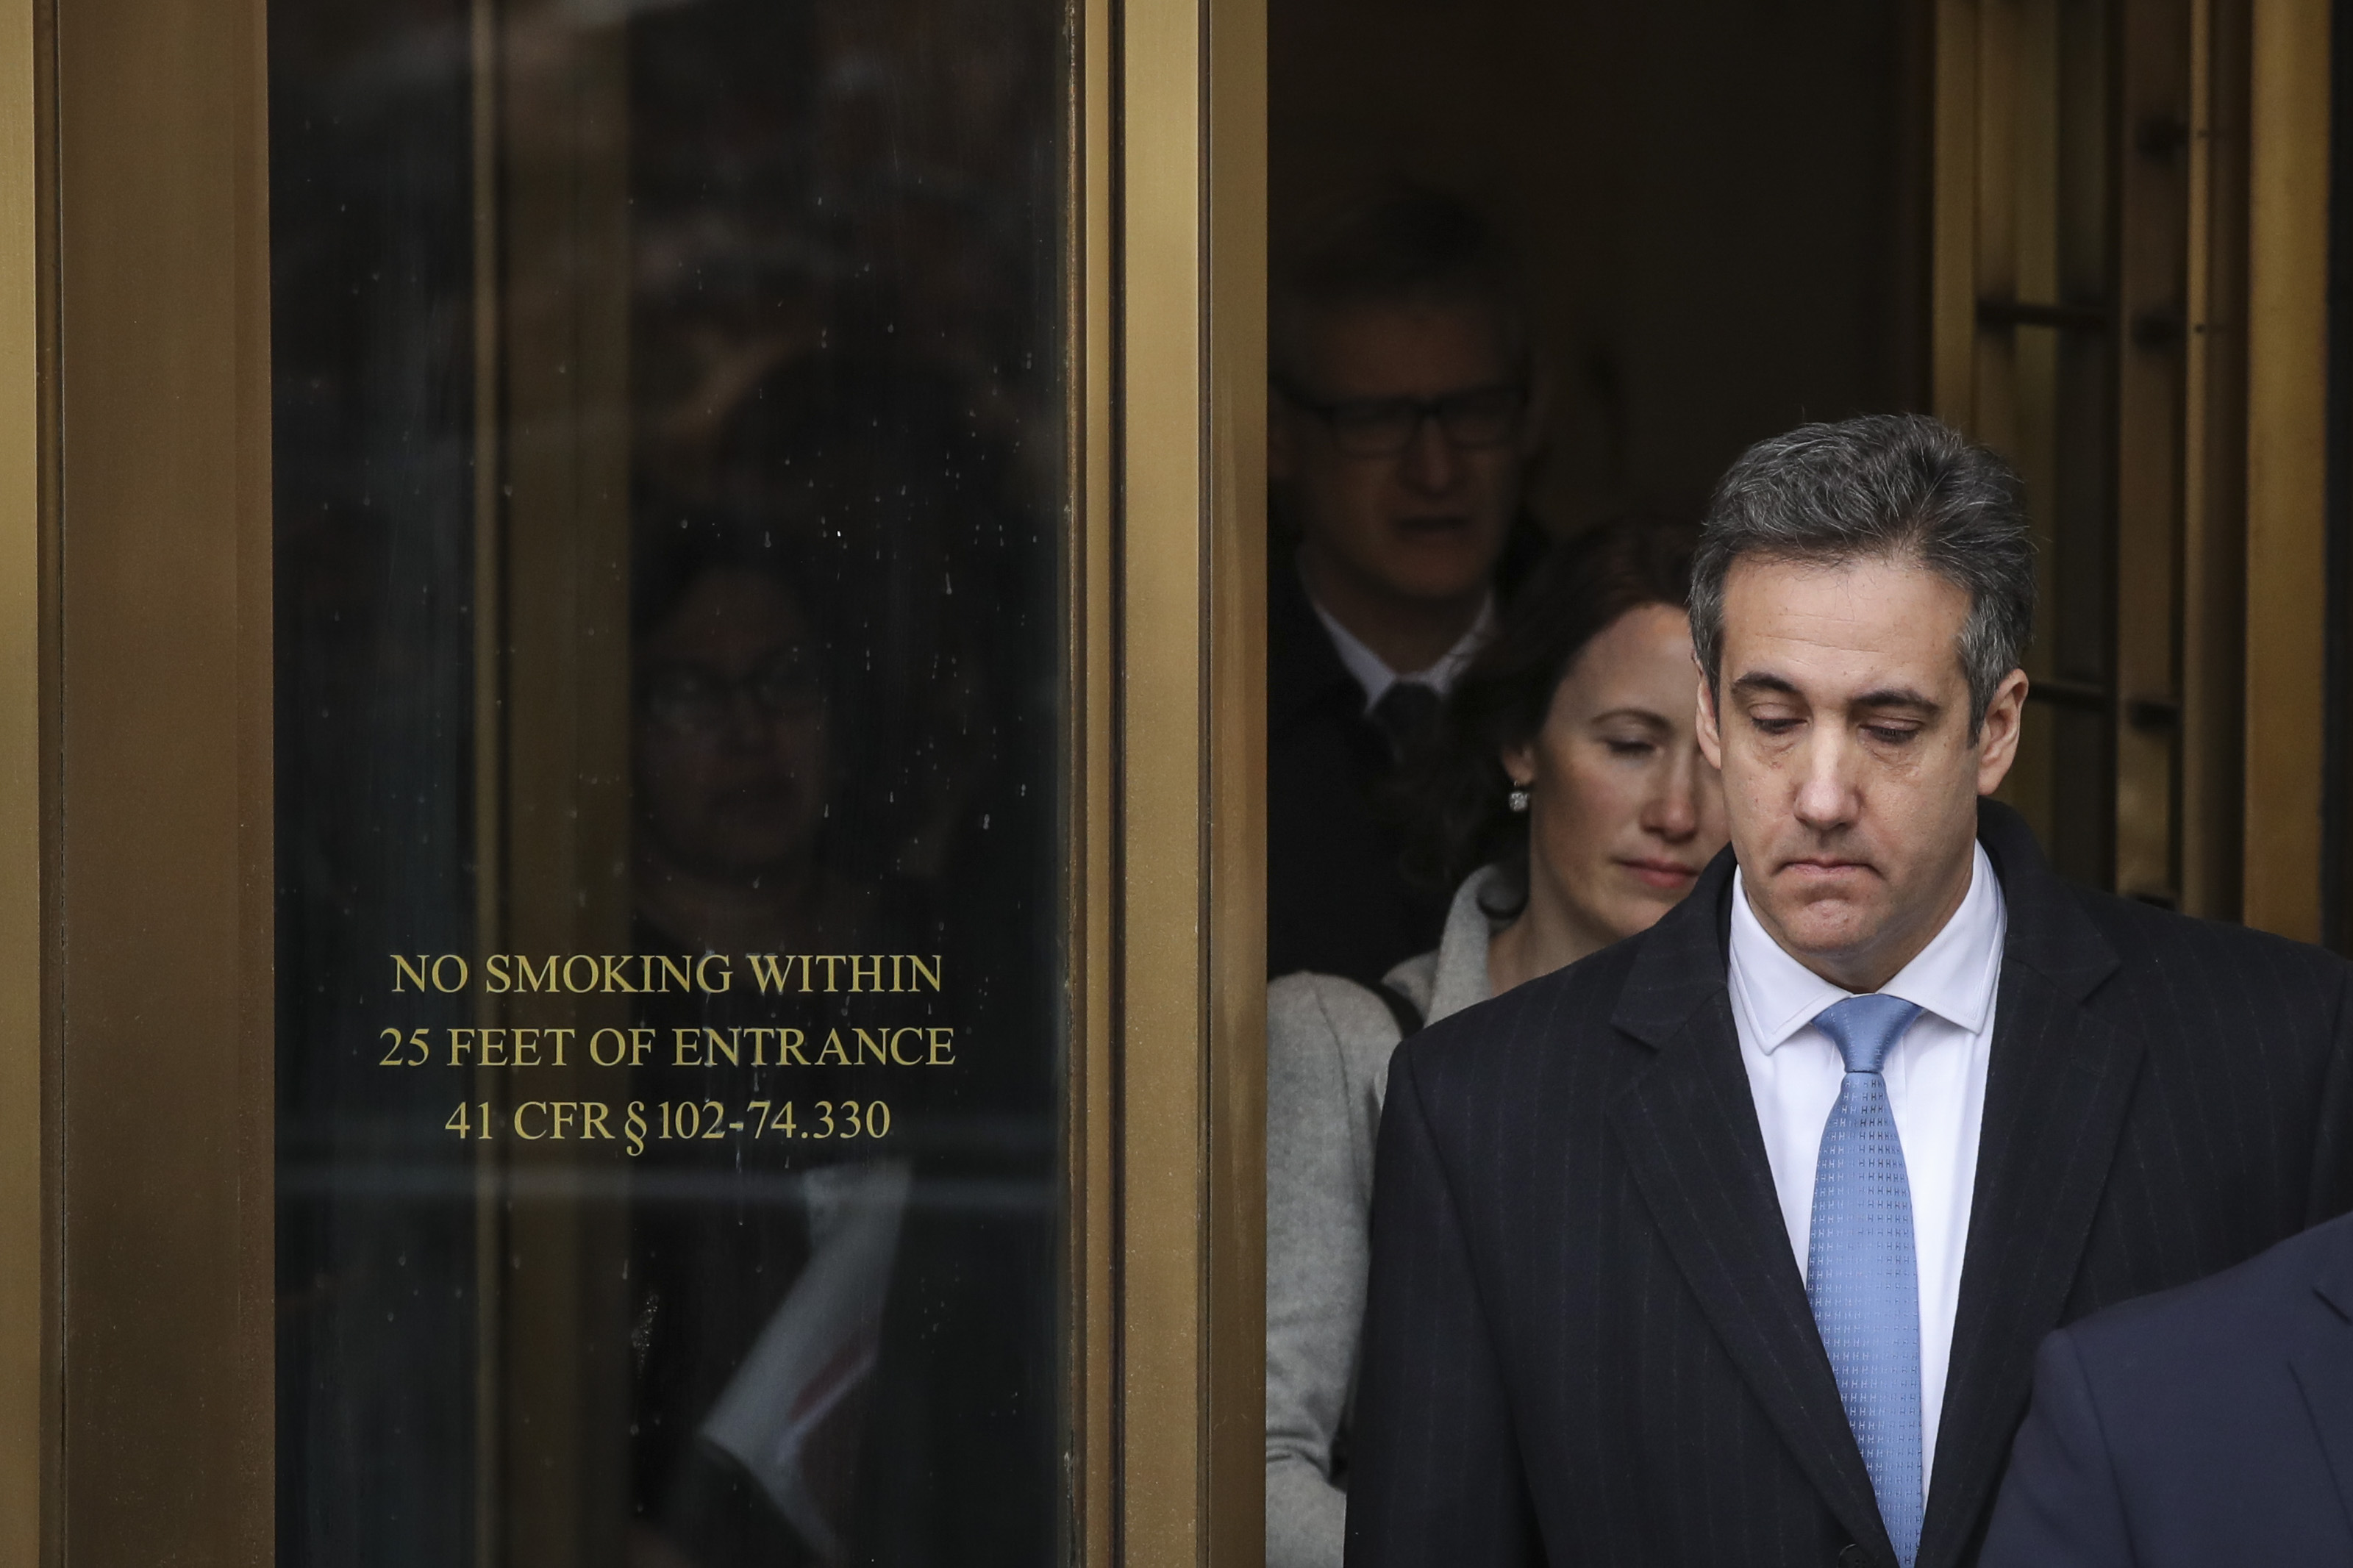 NEW YORK, NY - DECEMBER 12: Michael Cohen, President Donald Trump's former personal attorney and fixer,  exits federal court after his sentencing hearing, December 12, 2018 in New York City. Cohen was sentenced to 3 years in prison after pleading guilty in August to several charges, including multiple counts of tax evasion, a campaign finance violation and lying to Congress. (Photo by Drew Angerer/Getty Images)